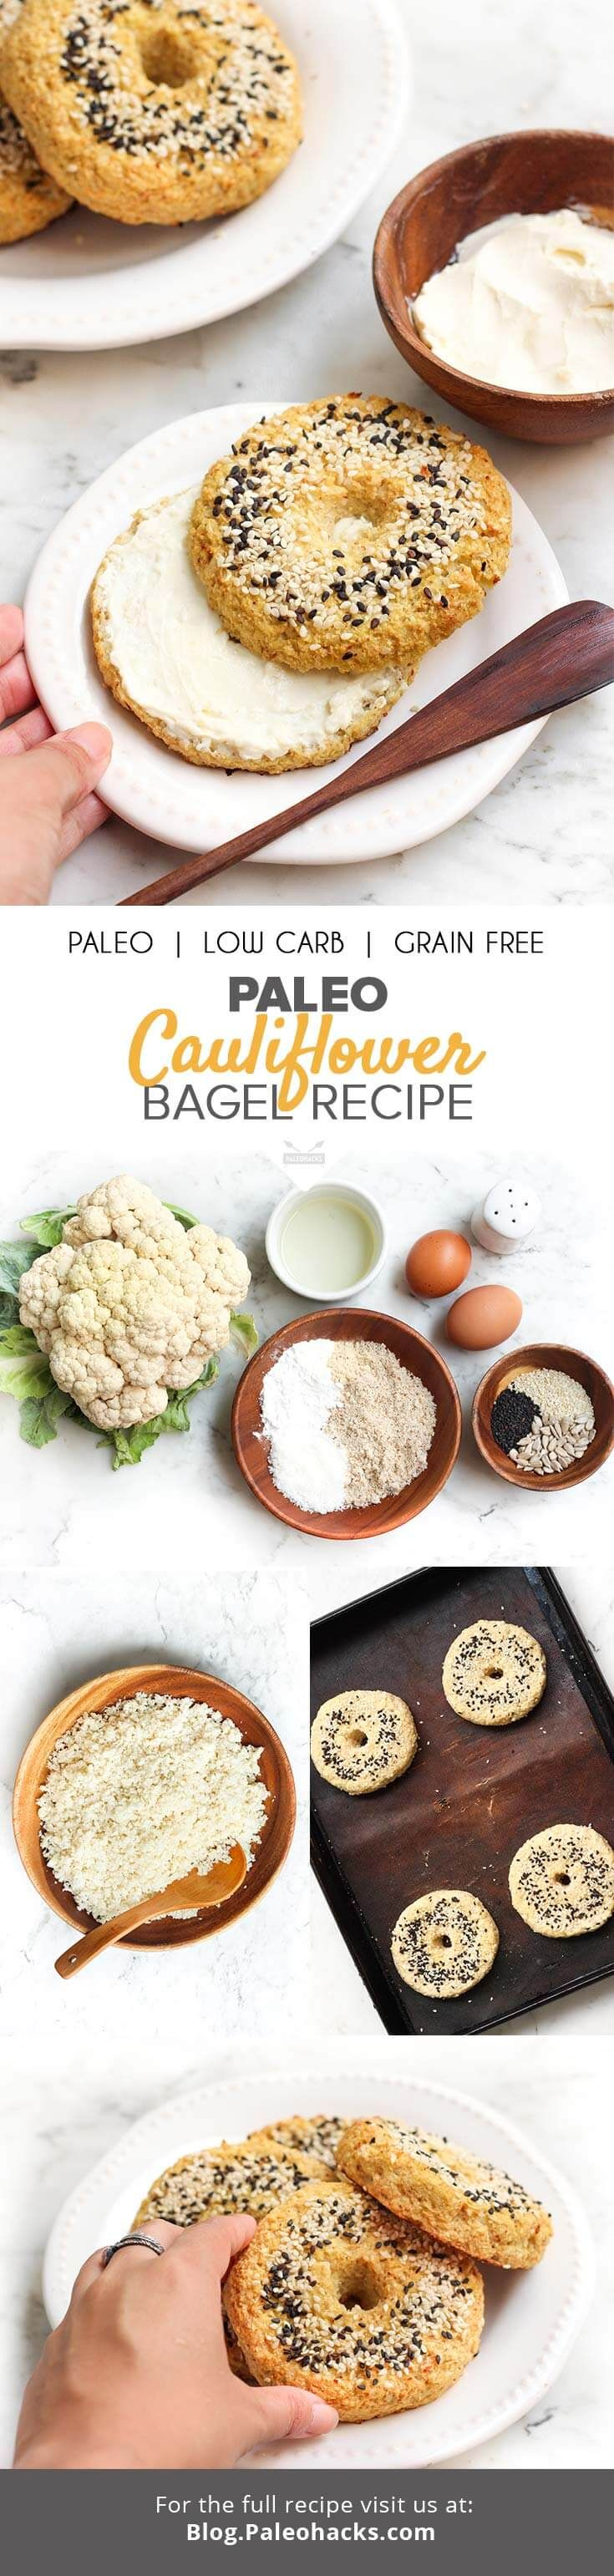 This Paleo Cauliflower Bagel recipe makes an amazing gluten-free alternative to wheat bagels. Top them with smoked salmon, sliced avocado, or chia jam. The possibilities are endless! Get the recipe here: http://paleo.co/caulibagels